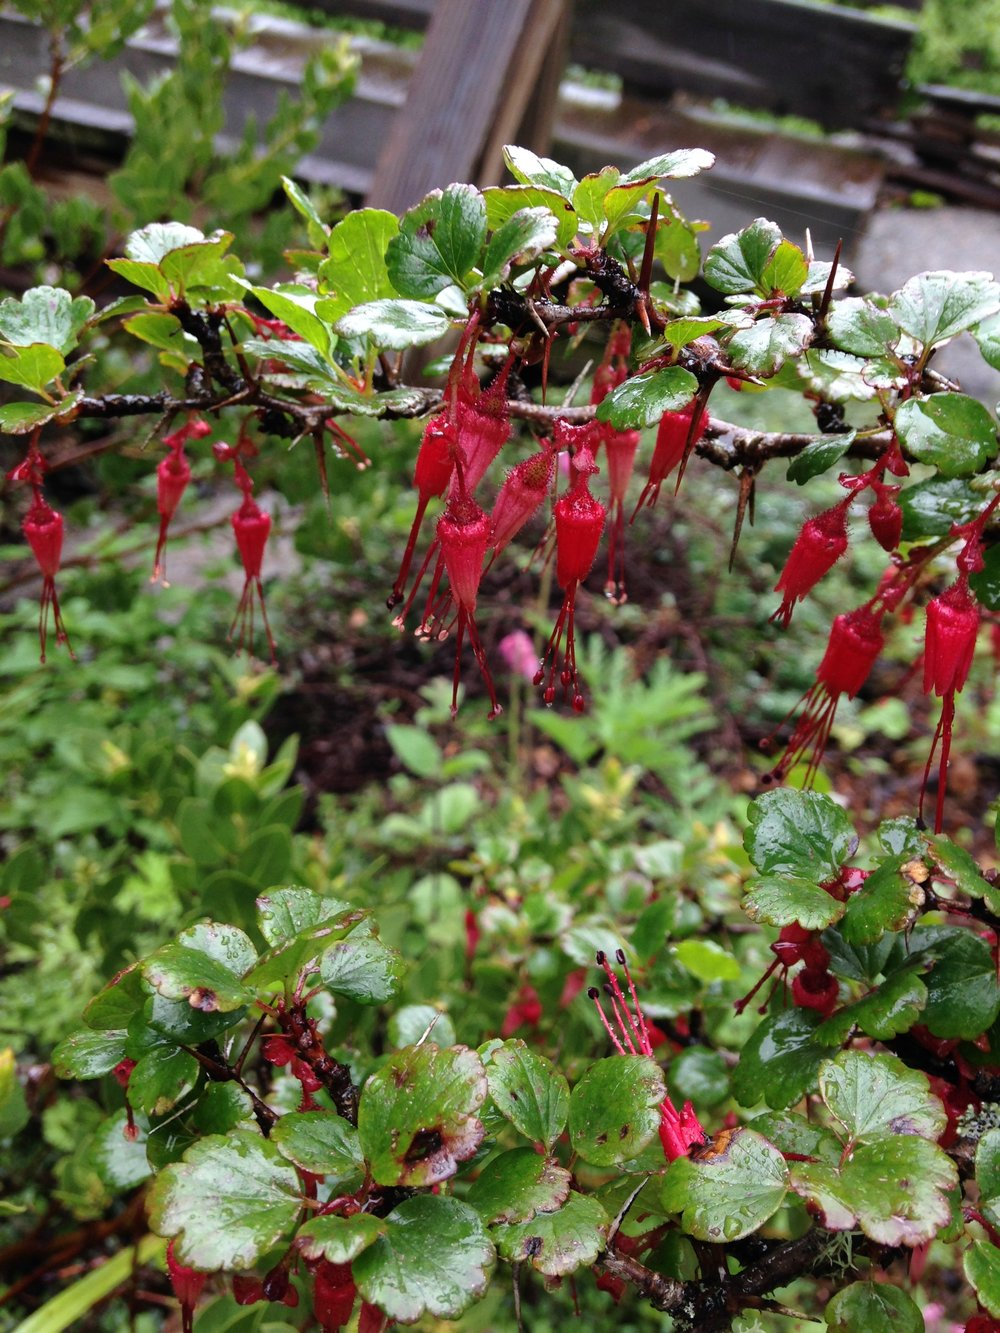 Fuschia-Flowered Gooseberry (Ribes speciosum)